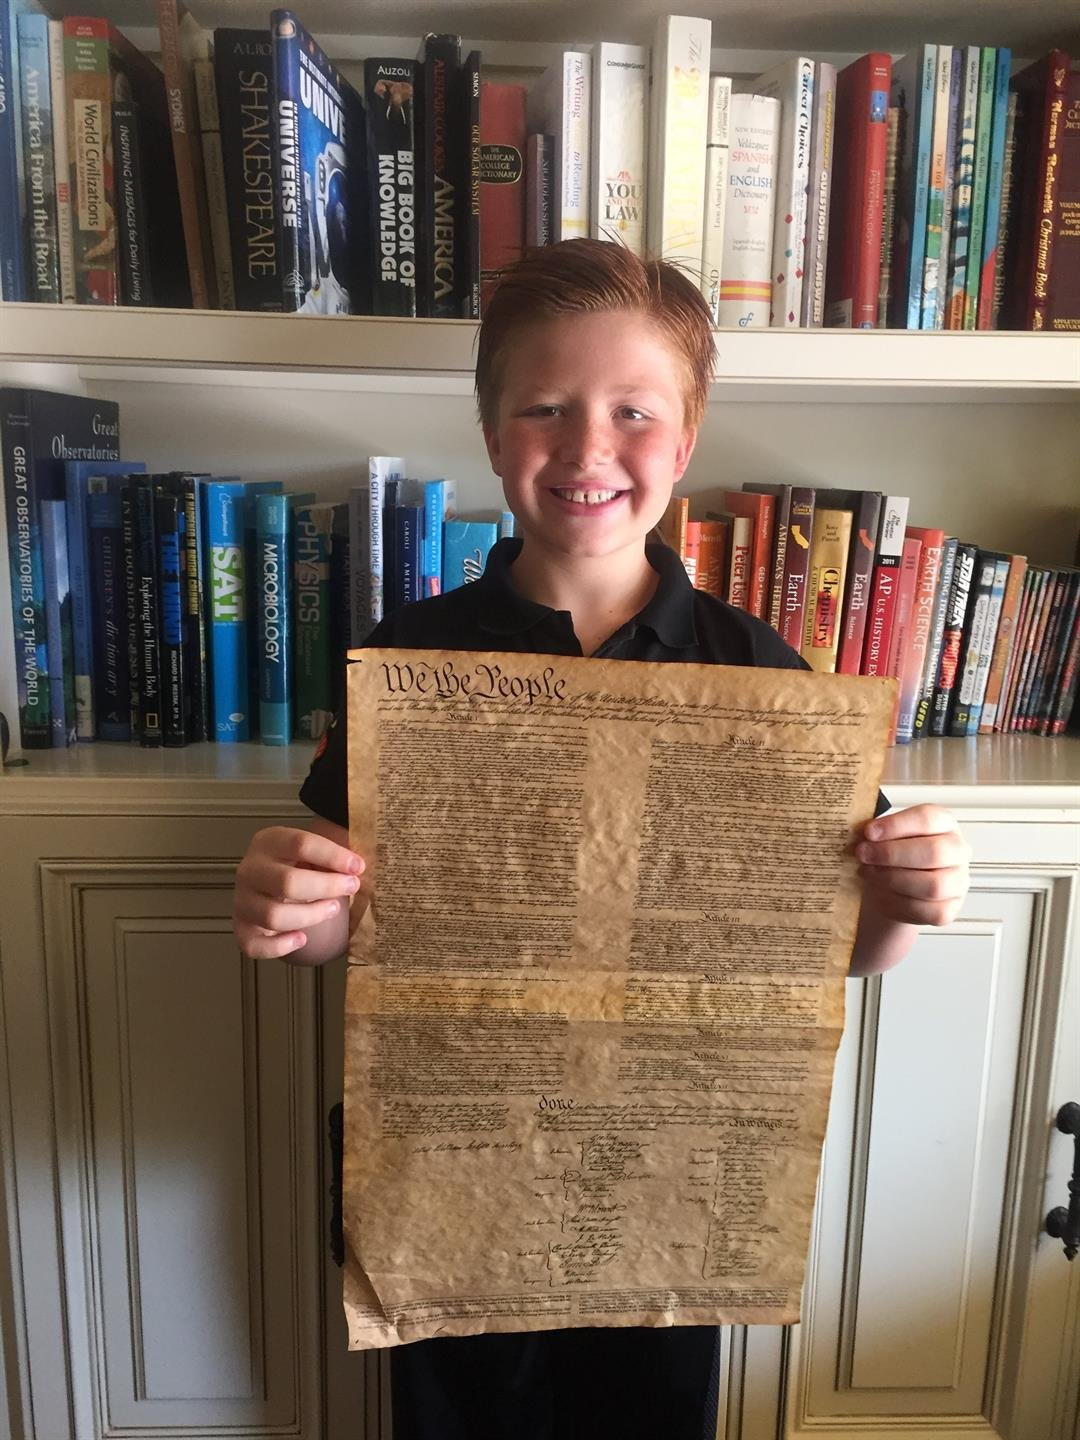 Nathan Bond, 10-year-old from Fresno, California, found time to memorize the entire US Constitution summer of 2016.